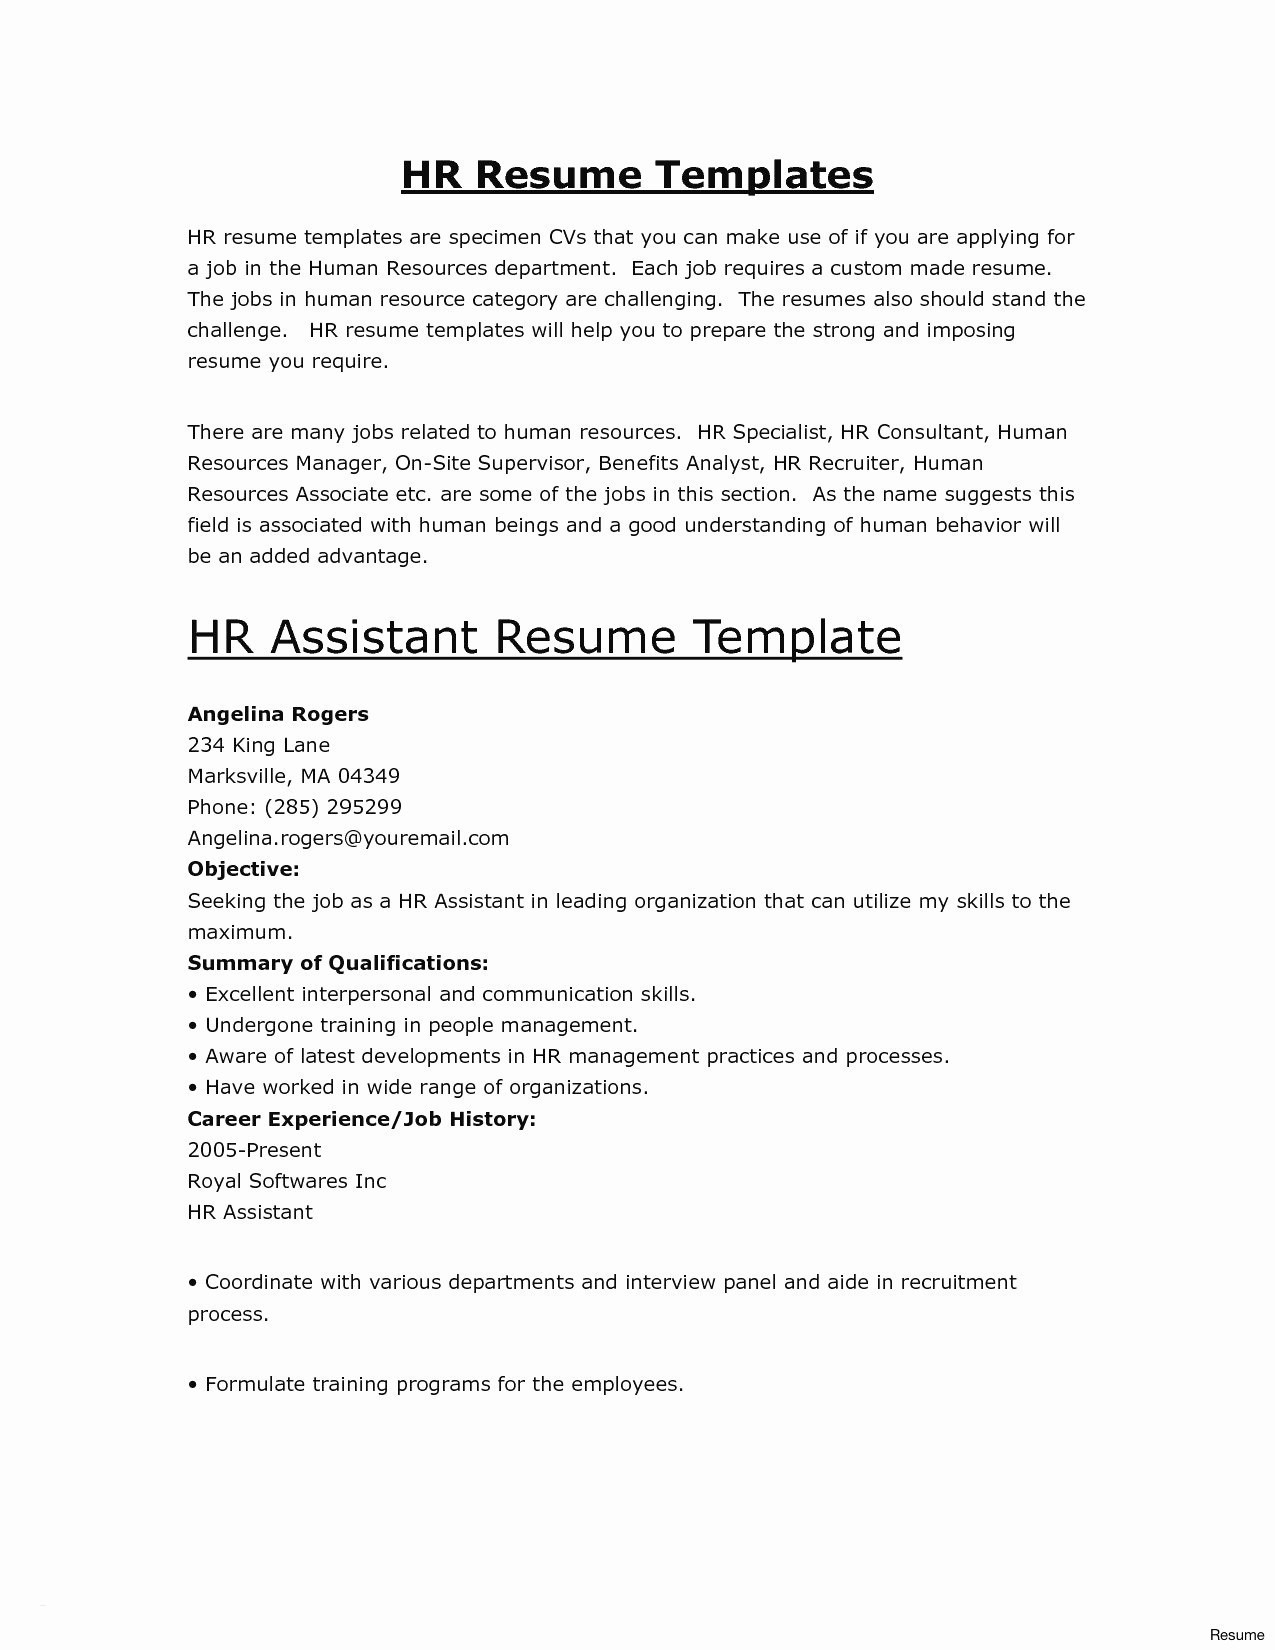 superintendent resume template example-Professional Profile Resume Unique Self Employed Resume New Luxury Examples Resumes Ecologist Resume 0d Professional 9-b